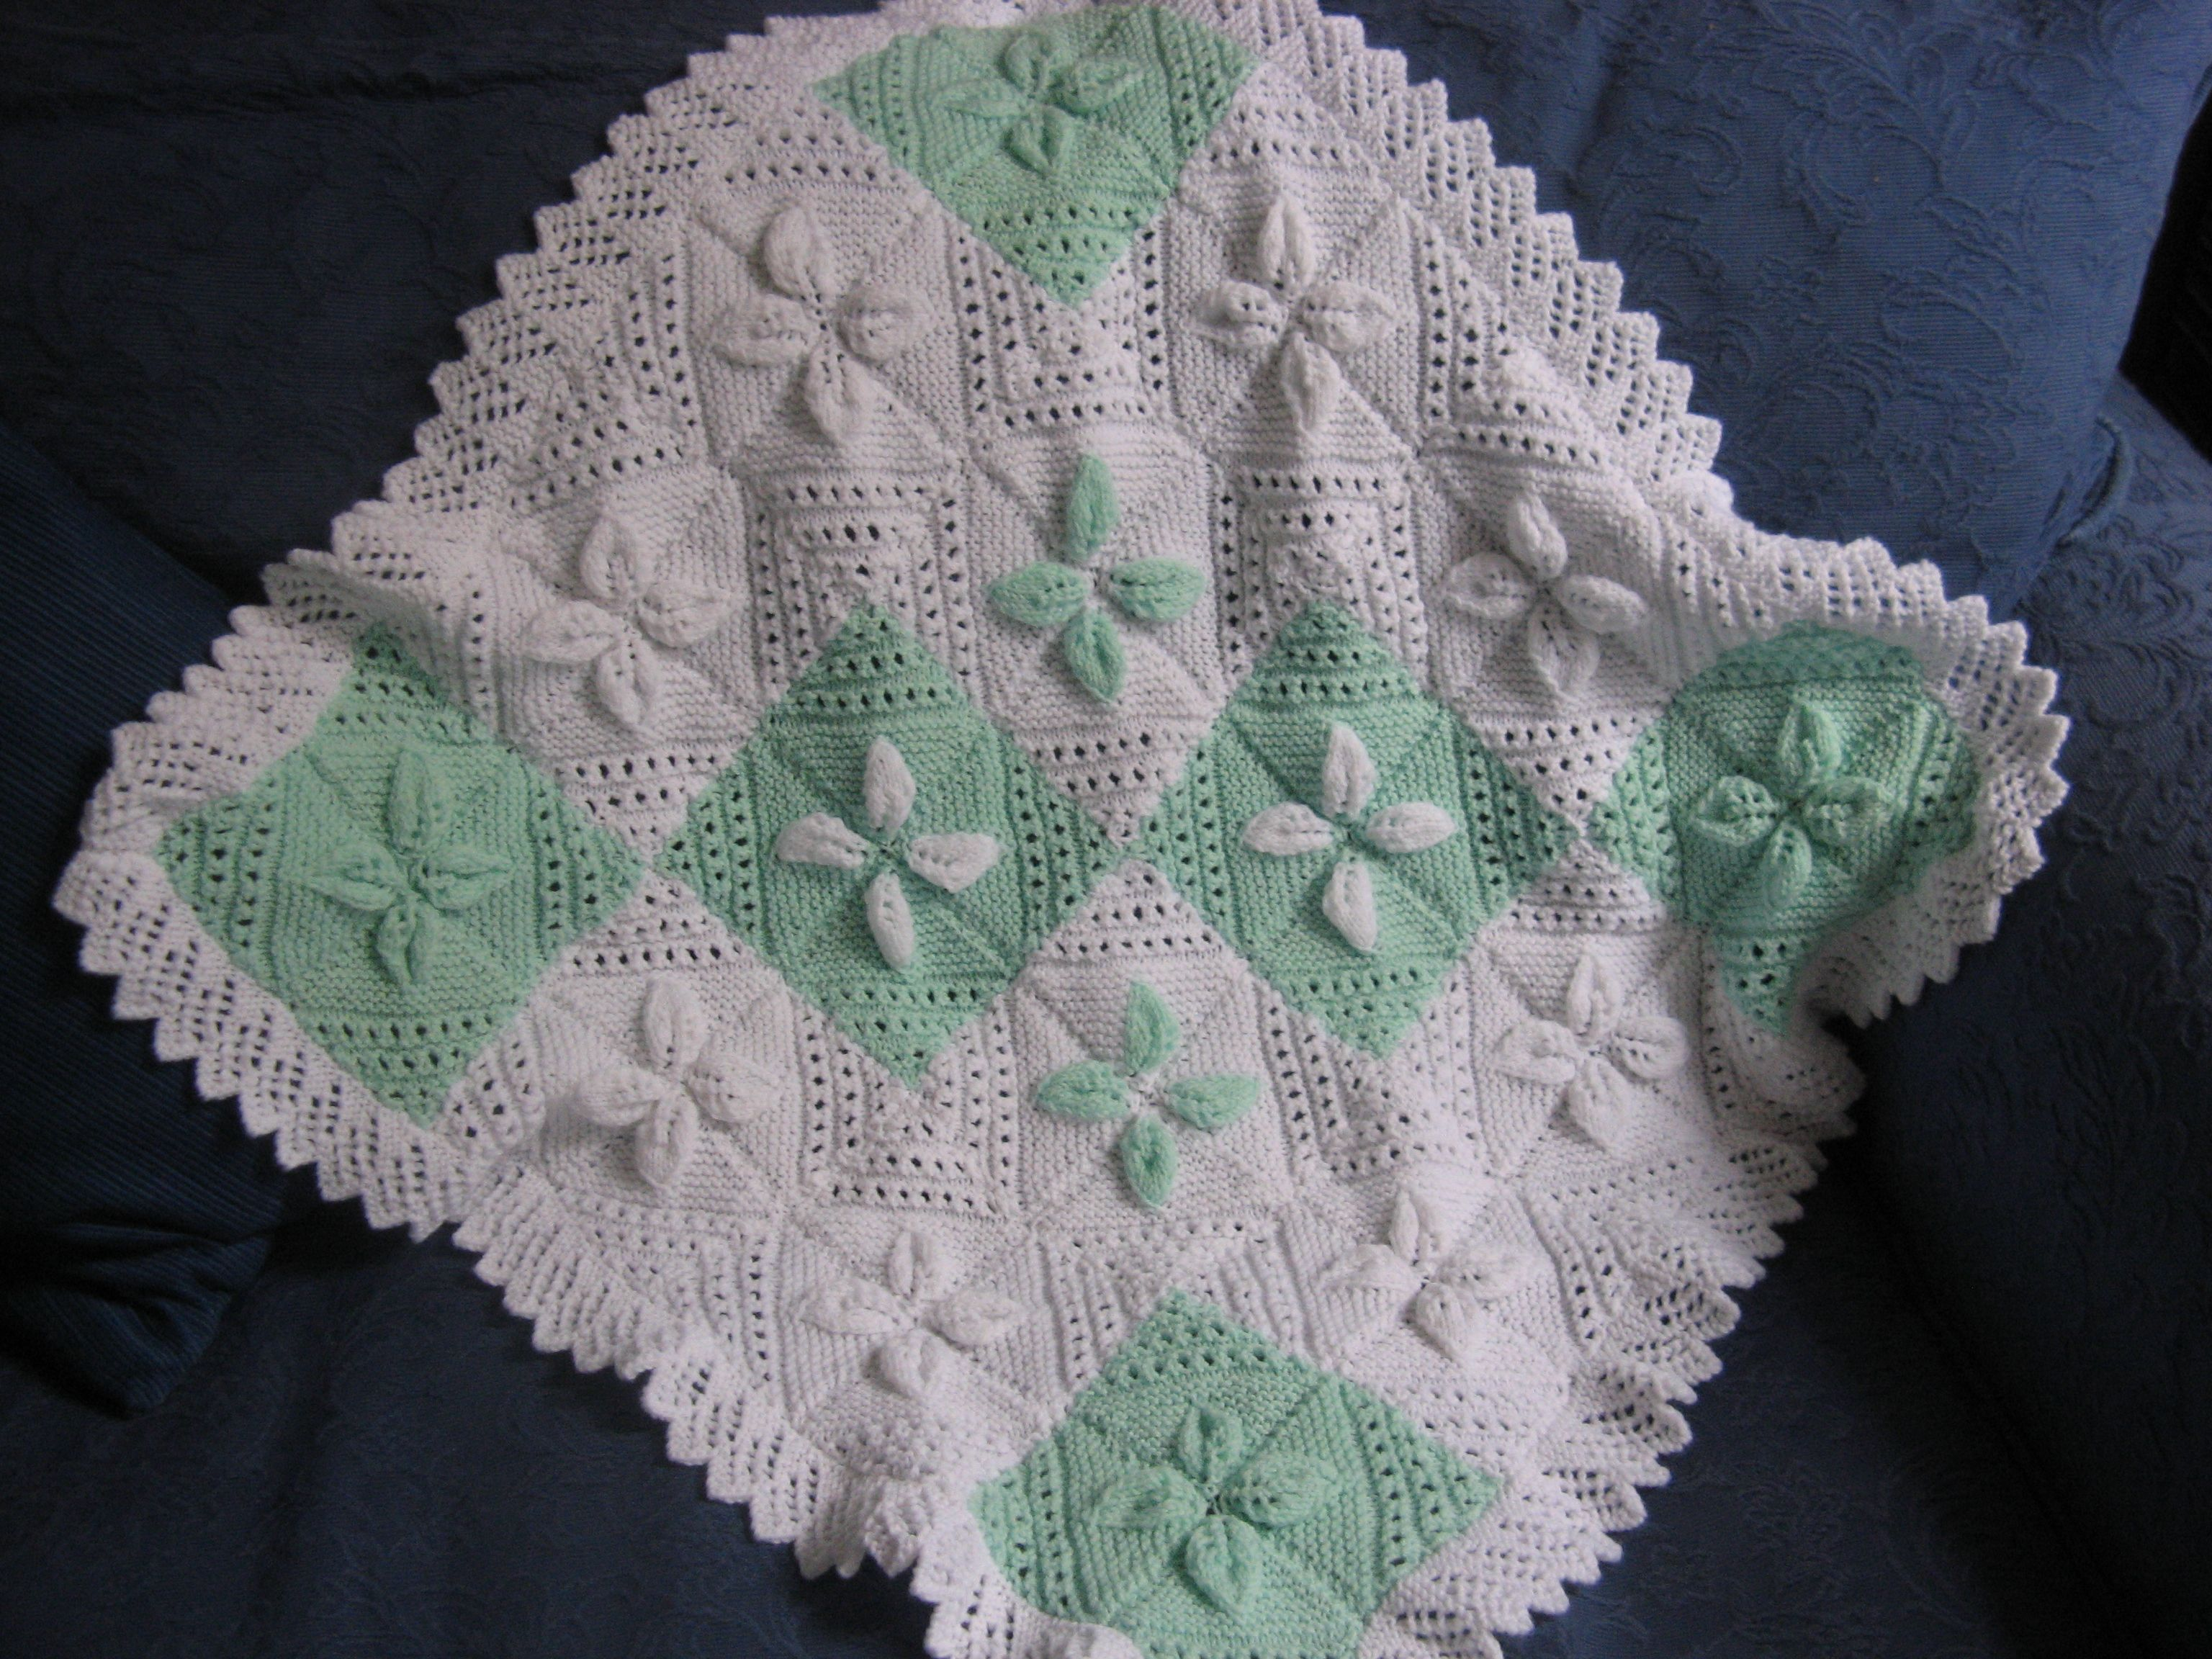 baby blanket from an ancient Patons pattern for a lace edged pram ...